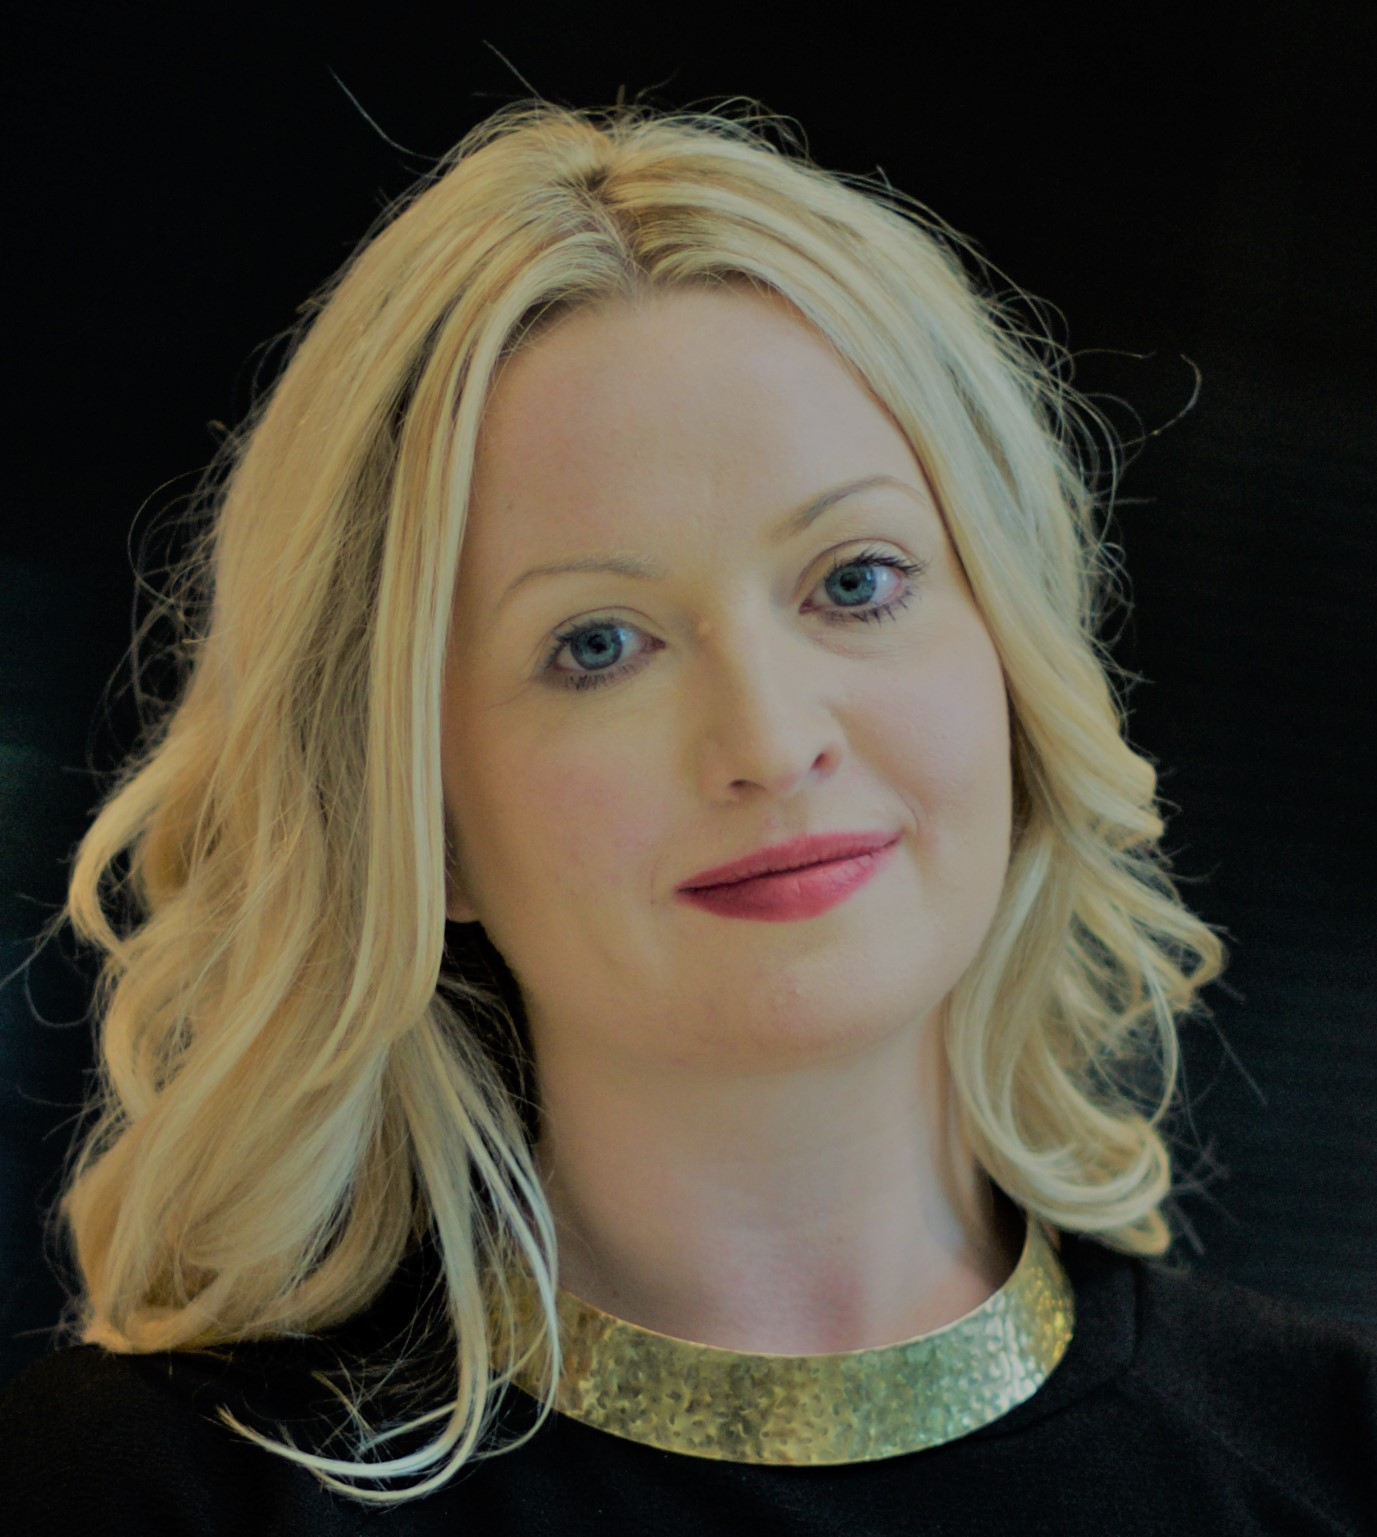 by Sophie-Jane Keela  ghan , MRICS DipPFS - Financial coach, money mindset expert,and experienced wealth manager   Partner of St. James's Place Wealth Management Group